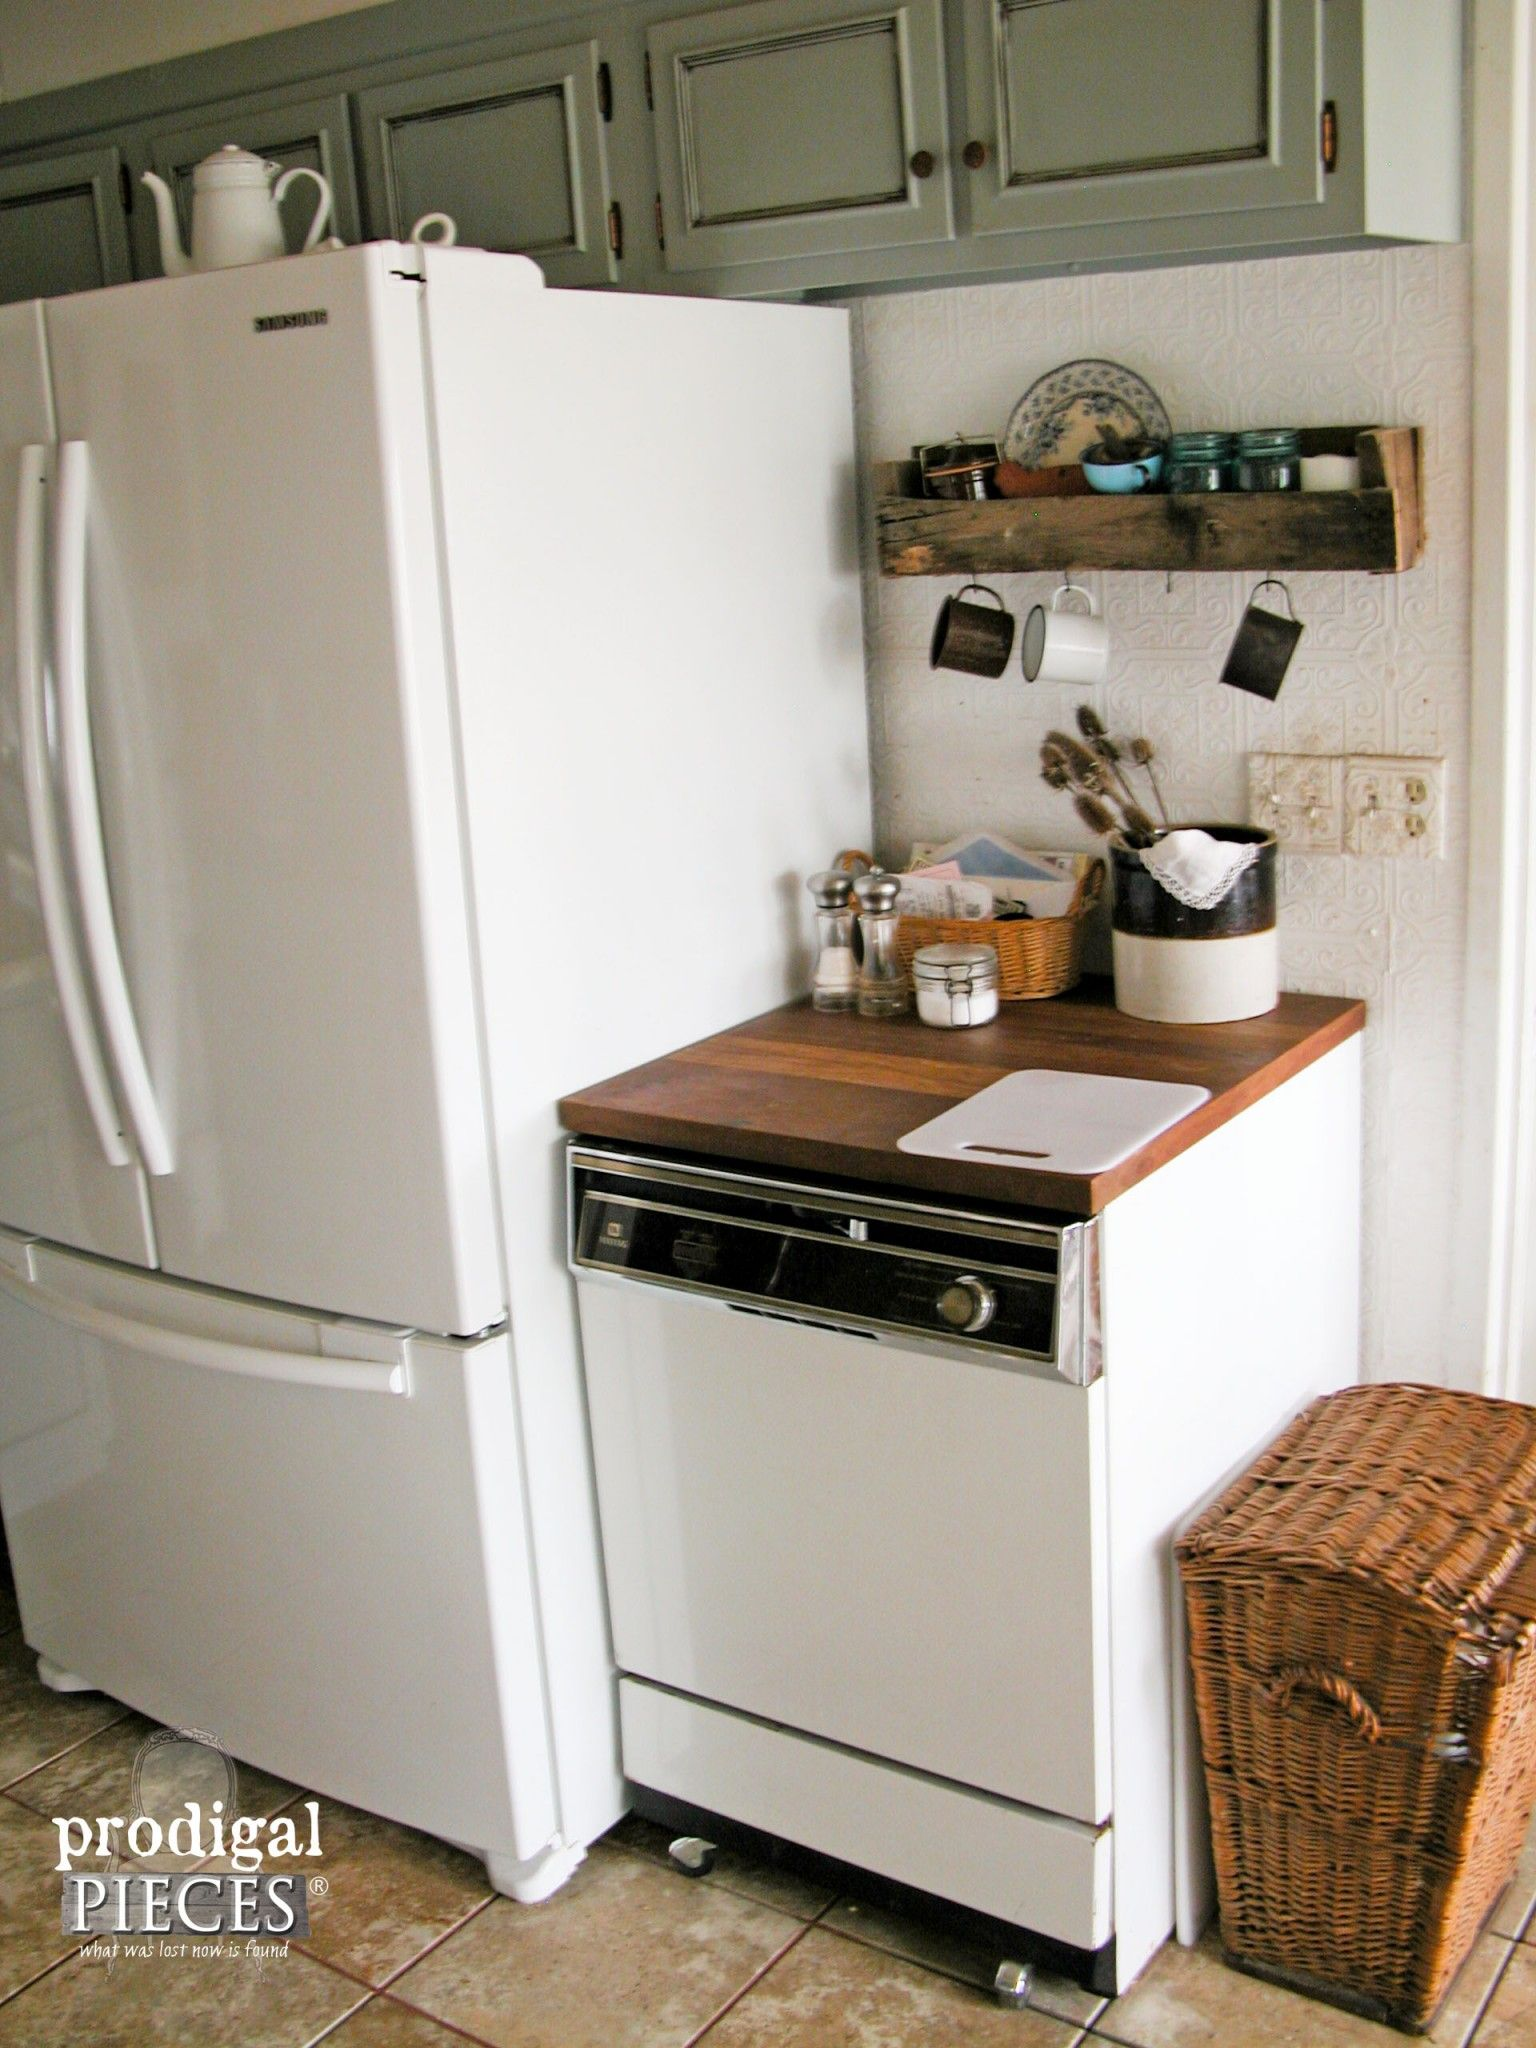 kitchen dishwashers lg appliance package budget window treatments update our place portable old dishwasher in remodel prodigal pieces